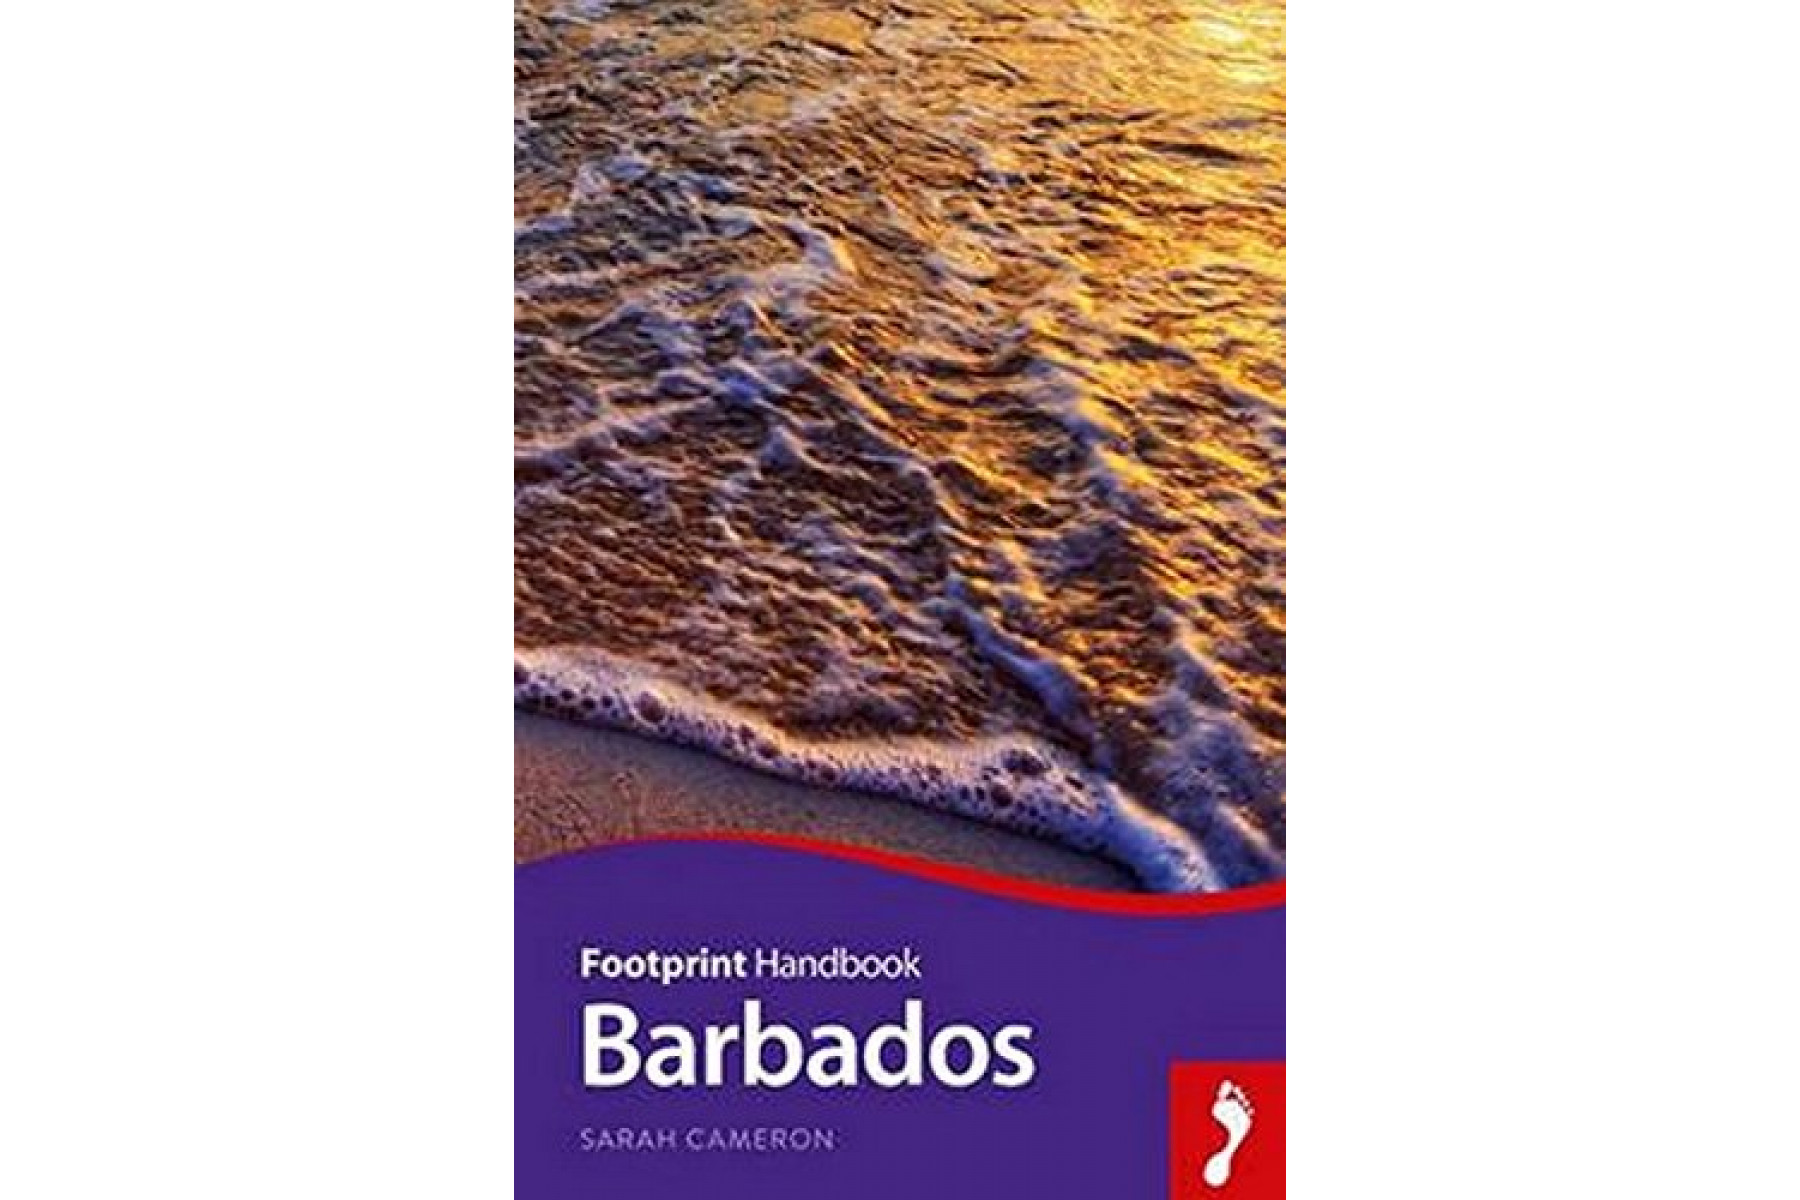 Barbados (Footprint Handbook)